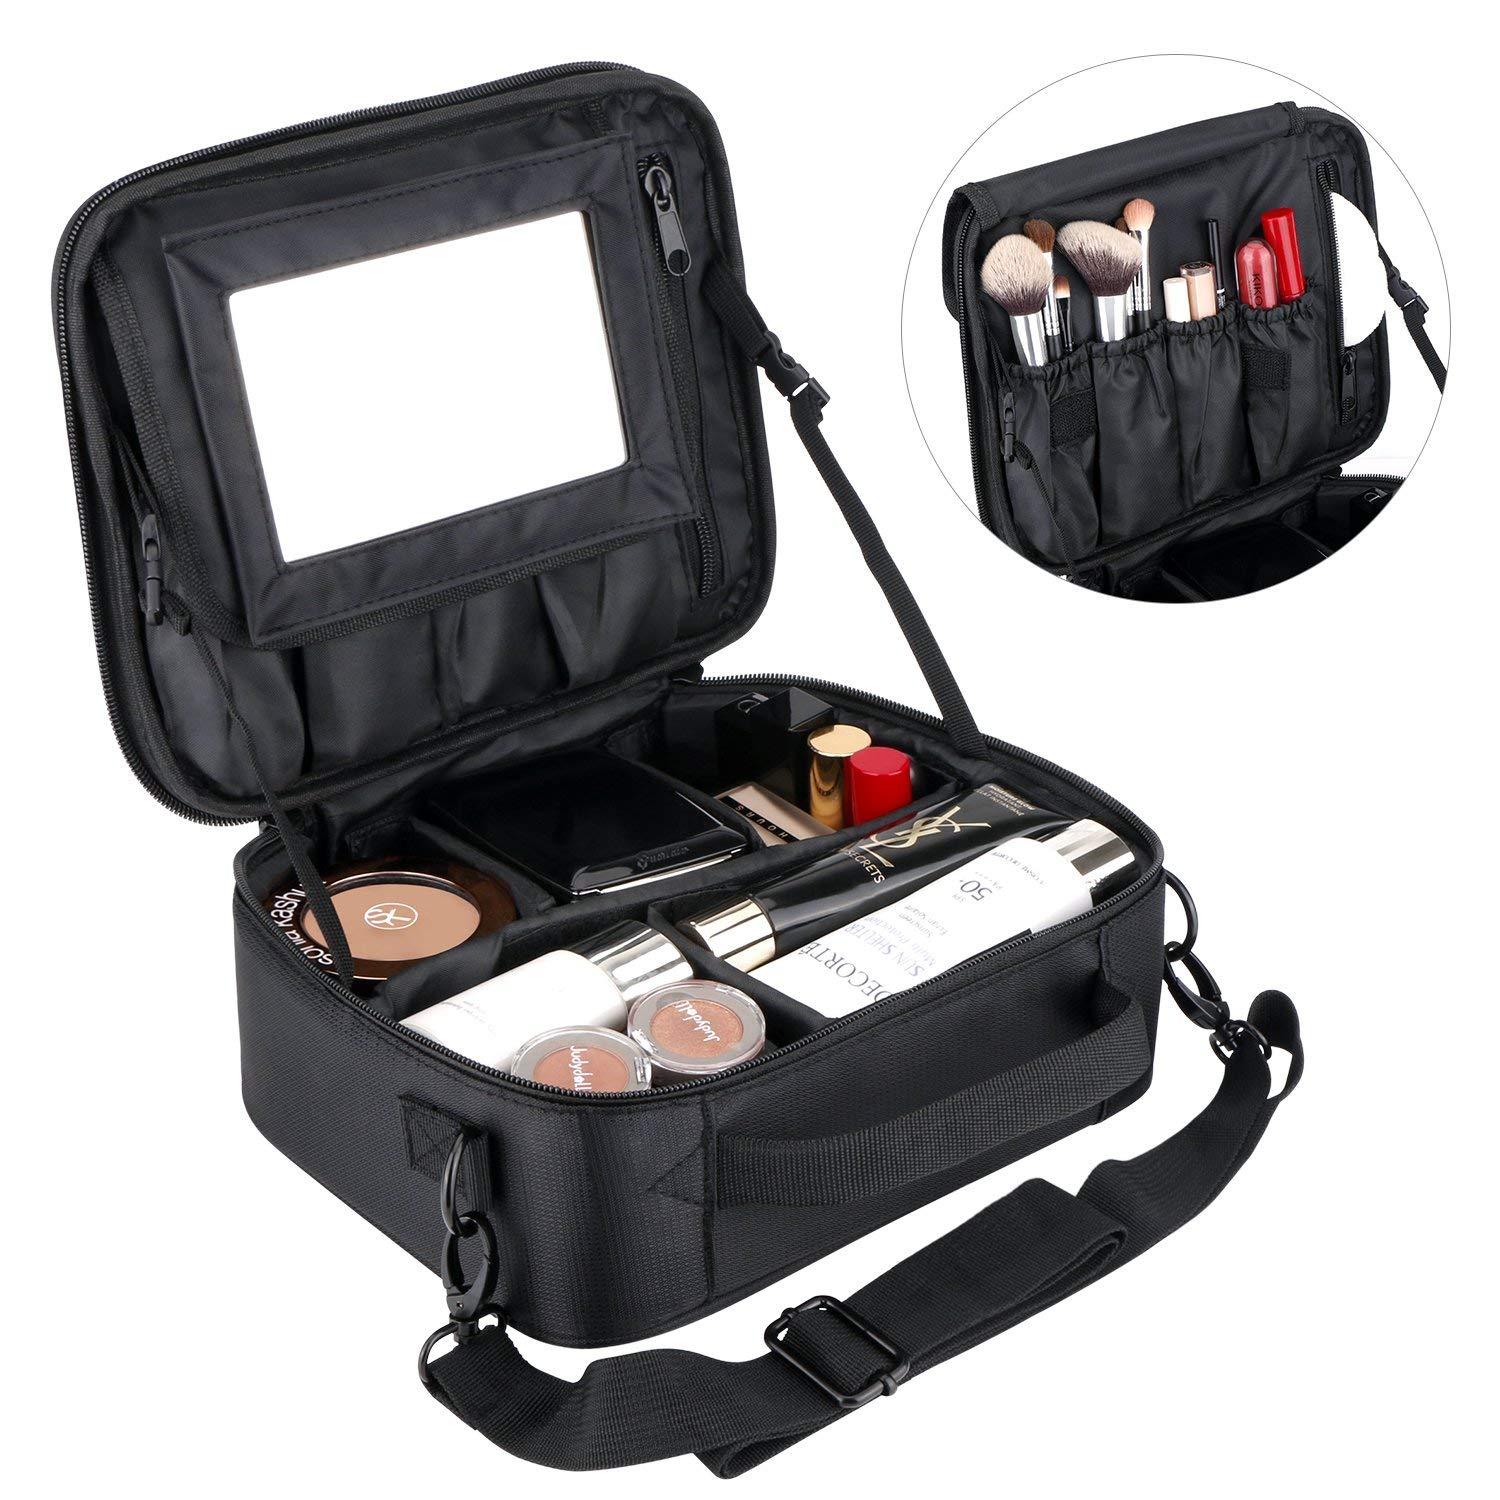 Large Makeup Bag With Mirror, Travel Waterproof Cosmetic Bag Professional Makeup Bags for Women